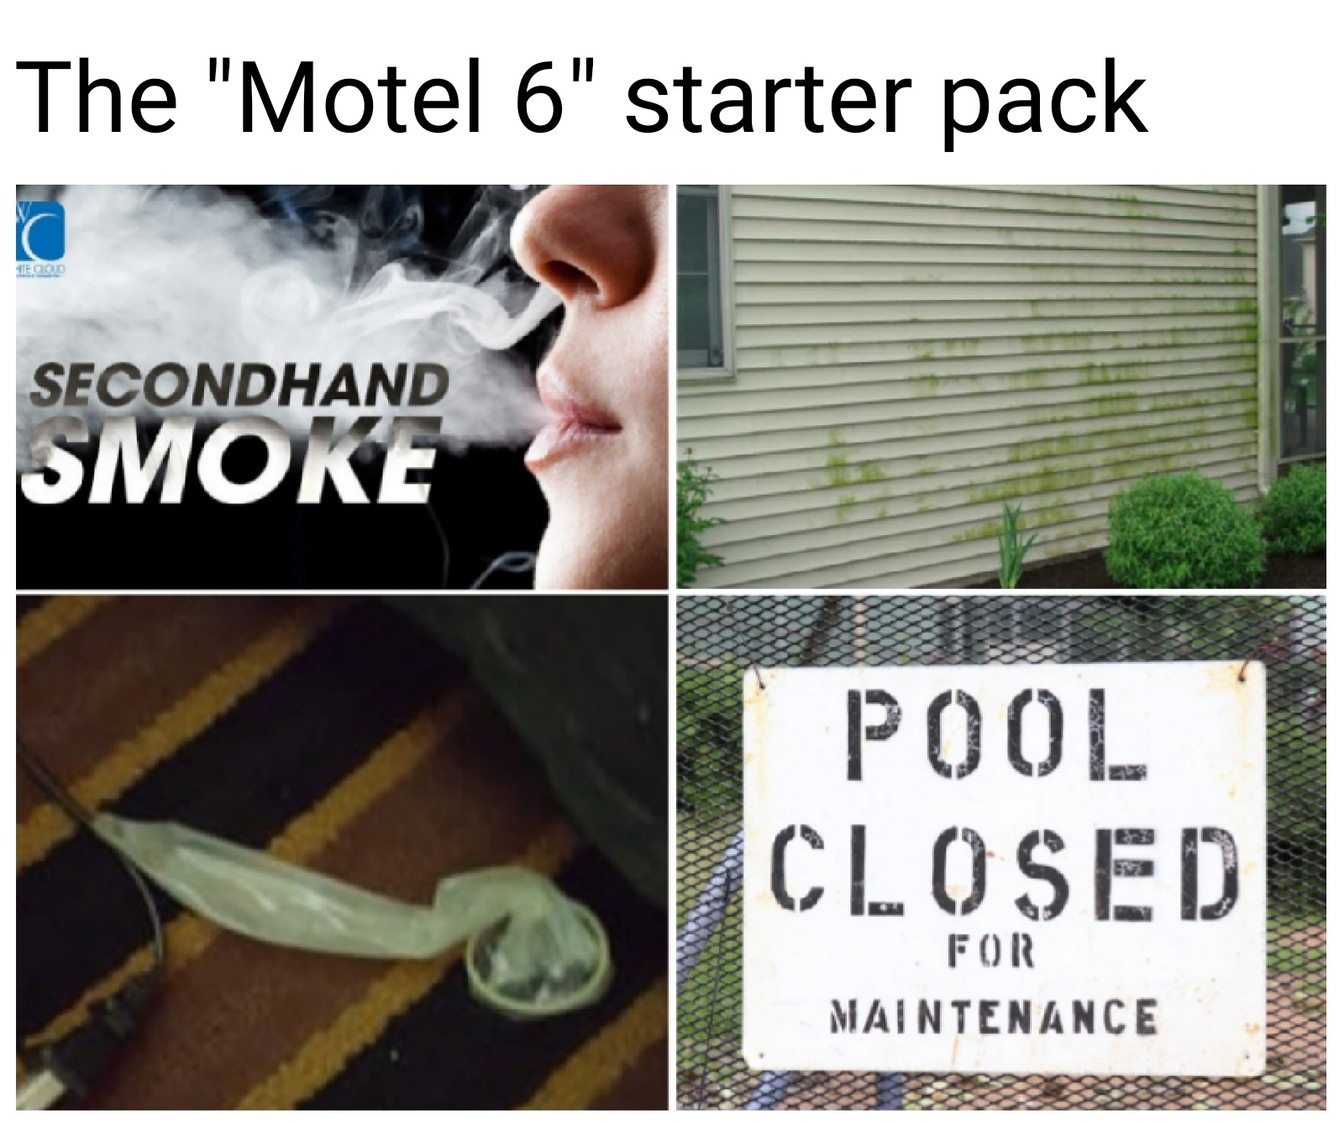 This also applies to Super 8 - meme